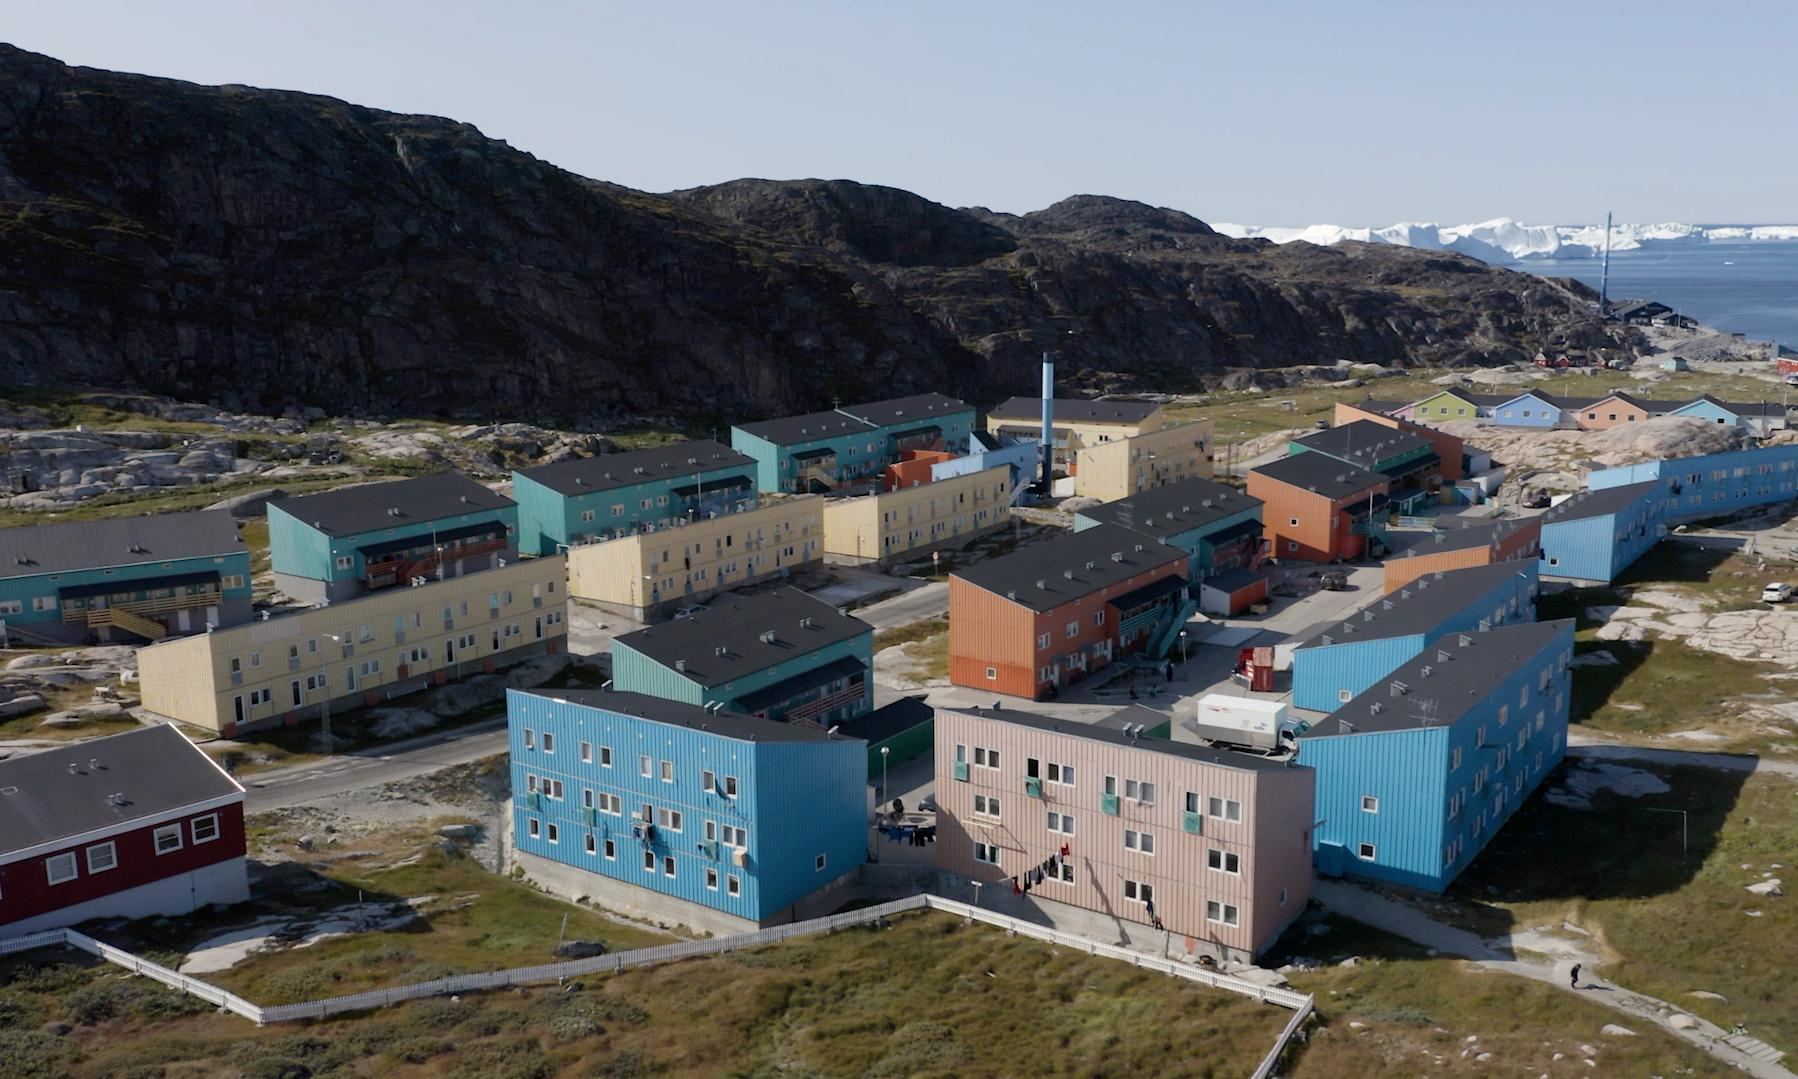 'Ecological grief': Greenland residents traumatised by climate emergency